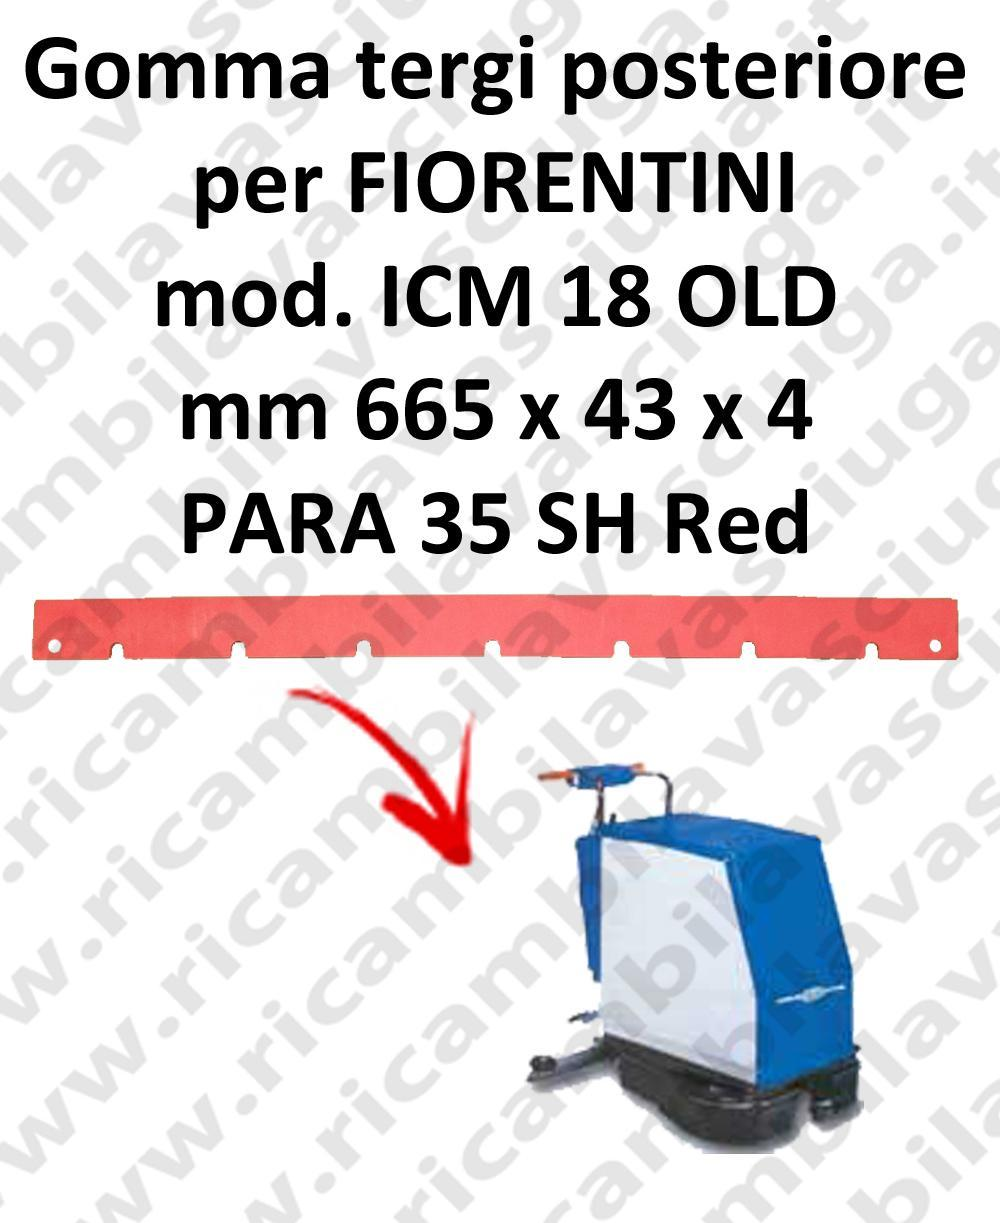 ICM 18 OLD Back Squeegee rubberfor FIORENTINI squeegee